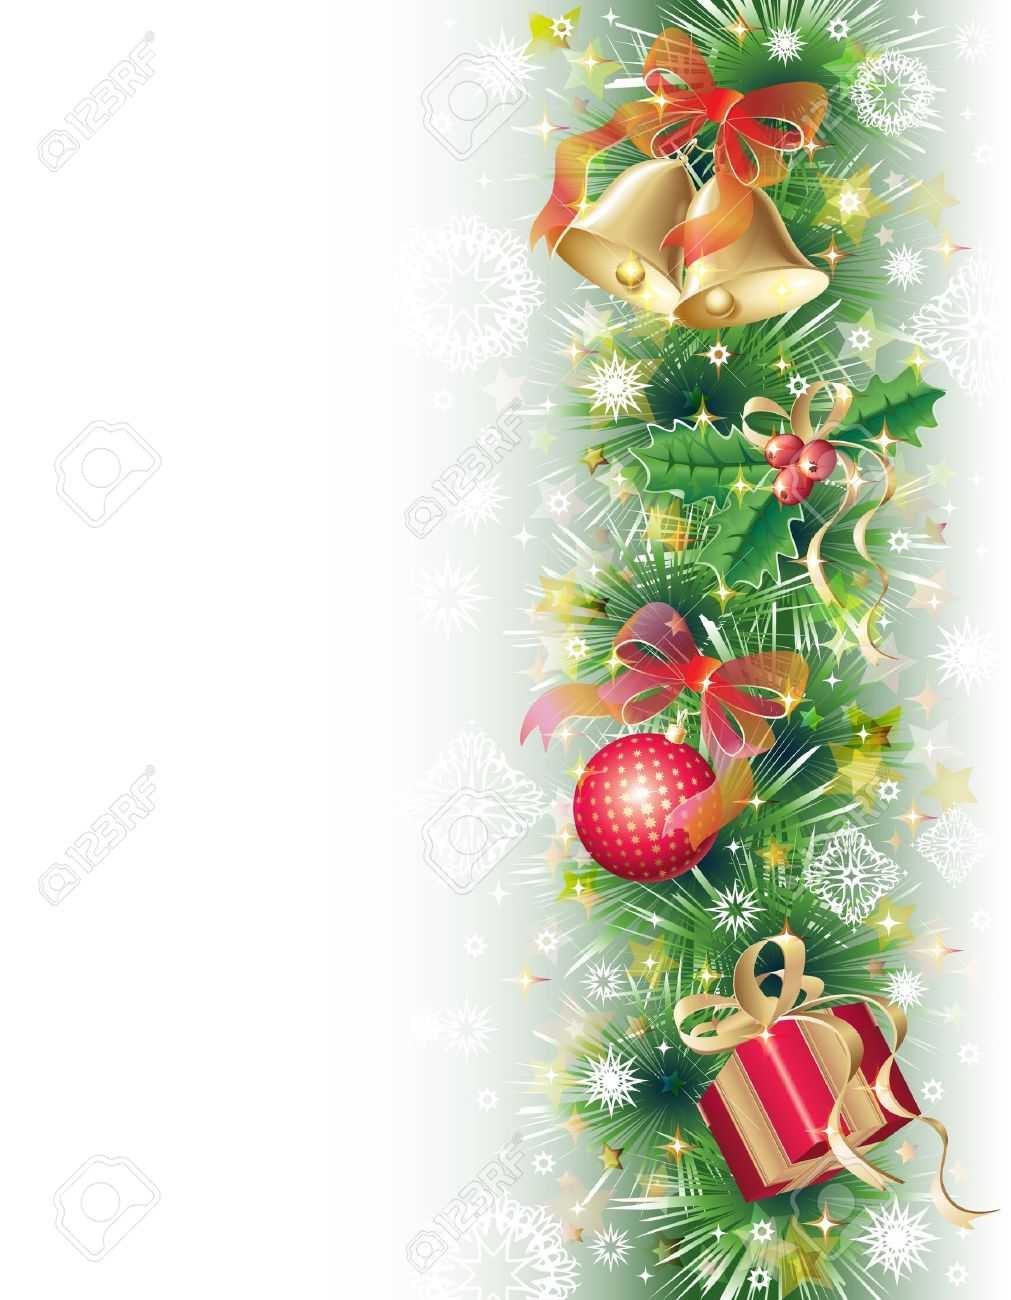 Green, gold and red background with christmas symbols (balls, bells, holly and gift box) Stock Photo - 11354775